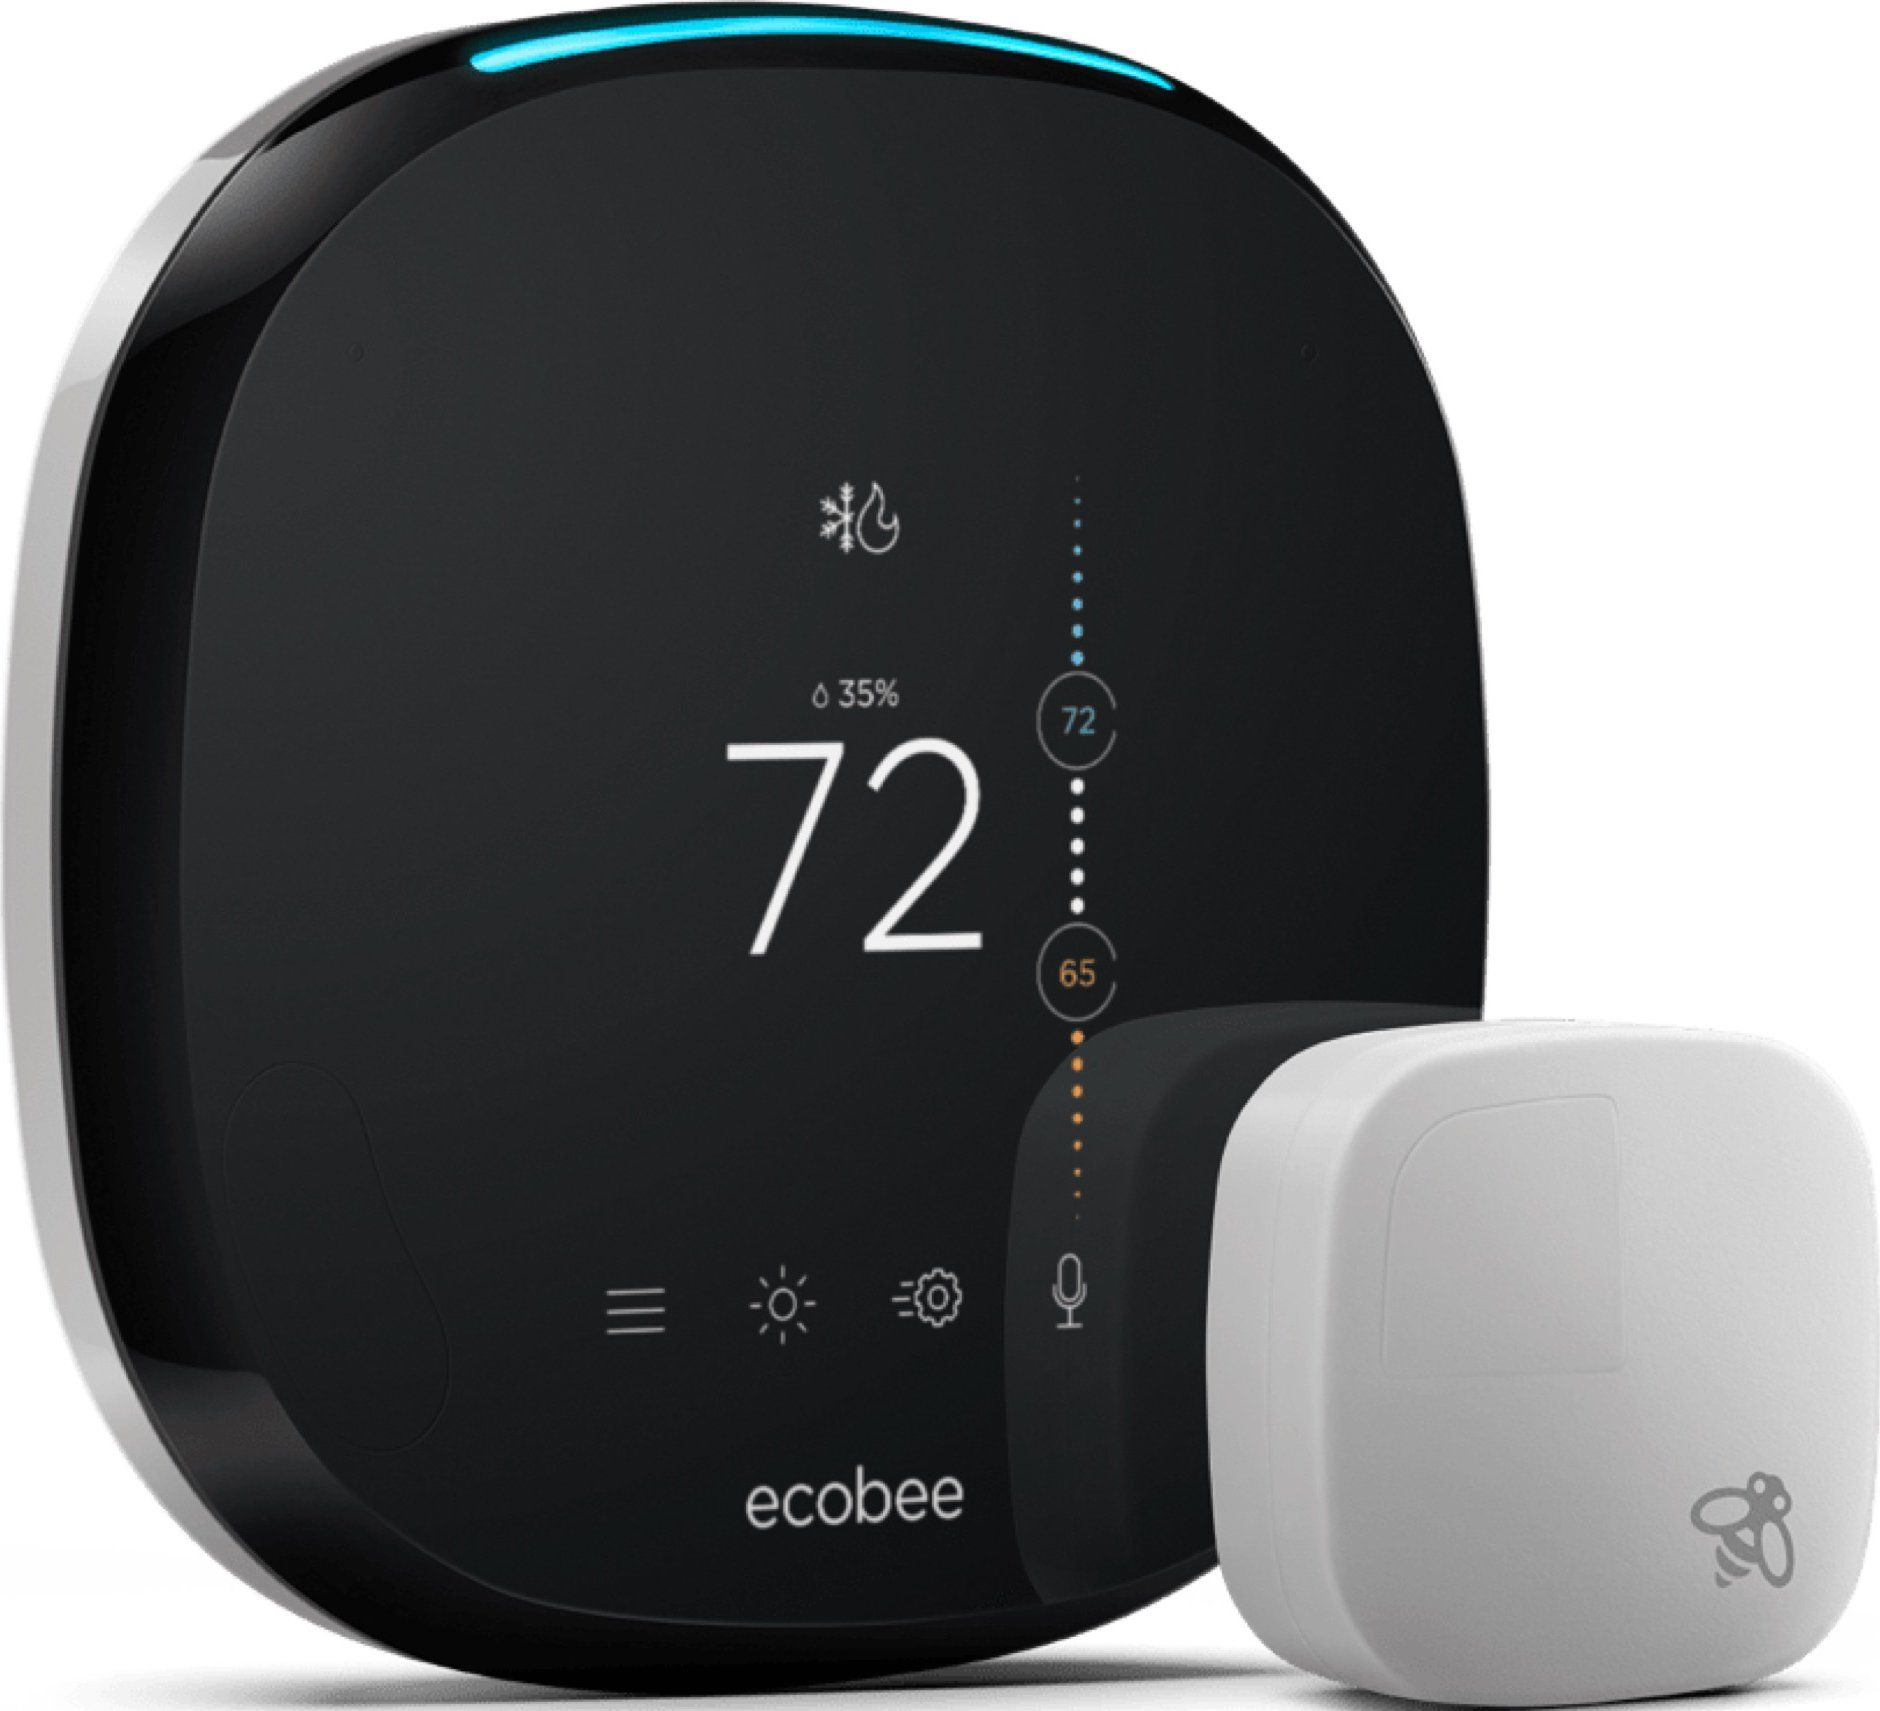 Trying to decide whether to get ecobee or Nest? Here's our